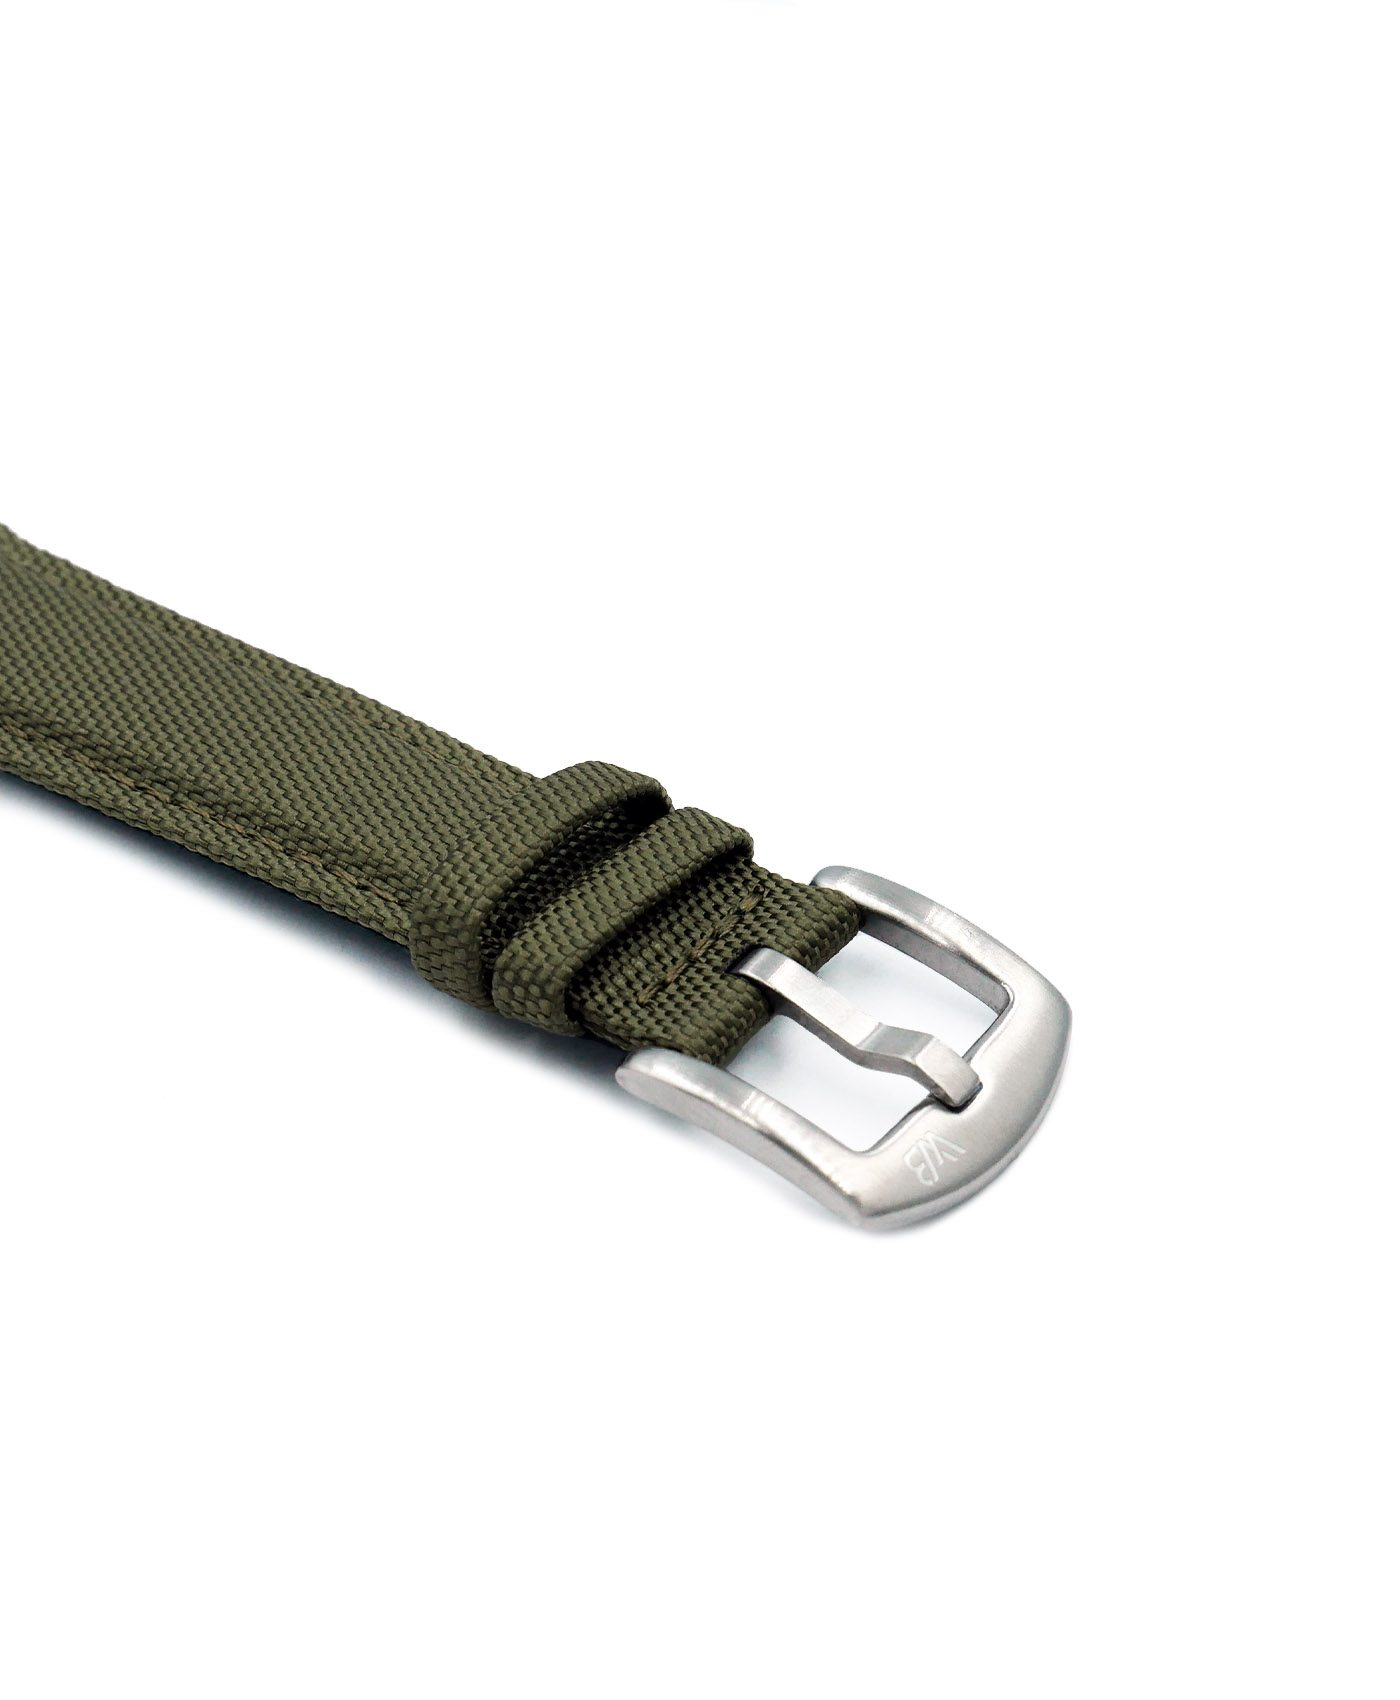 Cordura Watch Military Green stainless steel buckle by Watchbandit